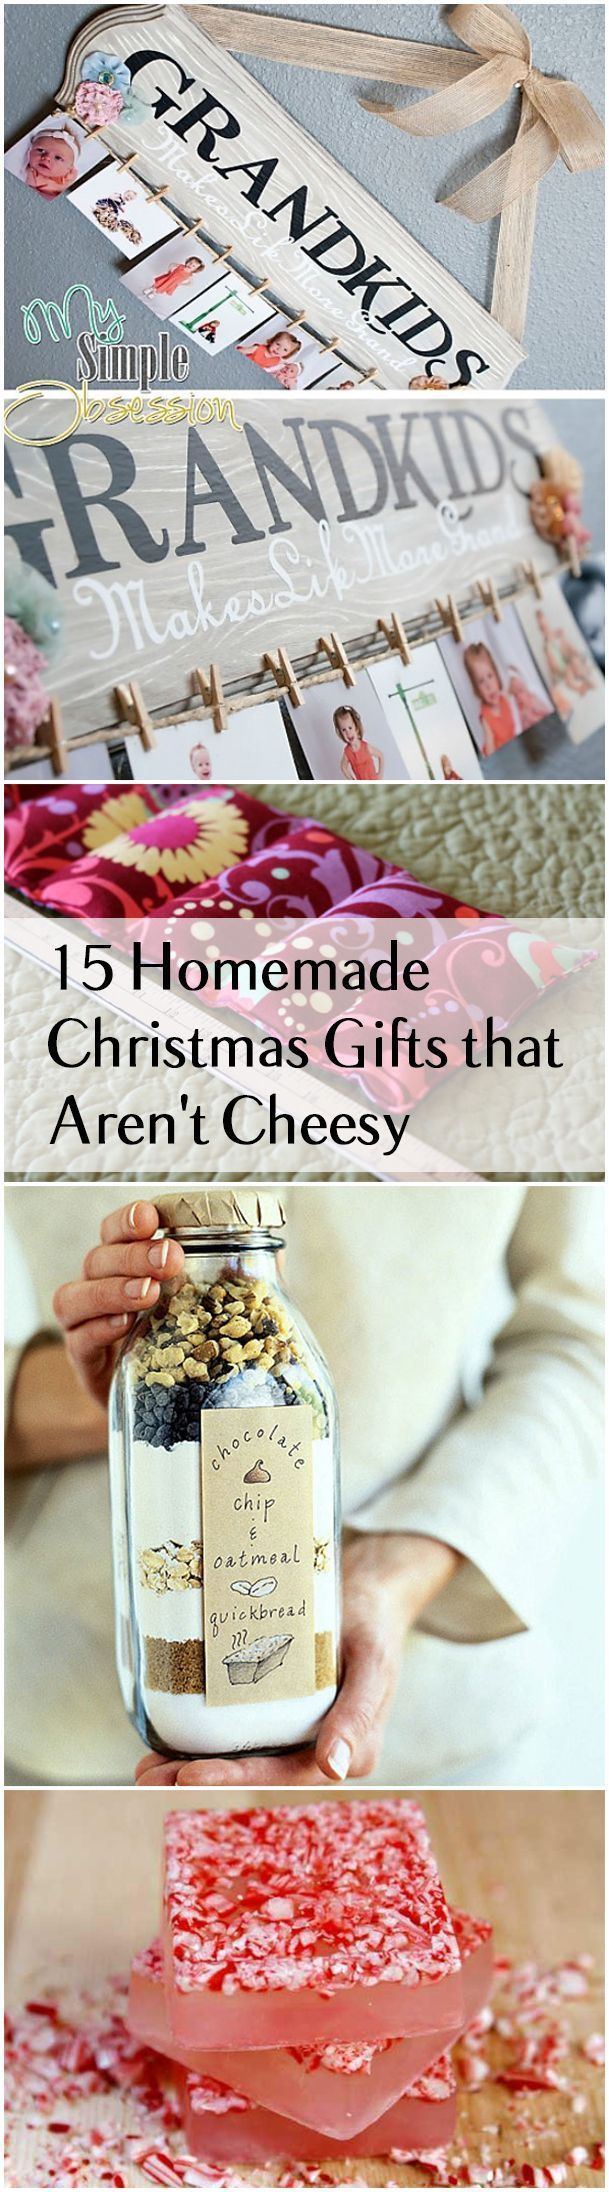 15 homemade christmas gifts that arent cheesy homemade christmas 15 homemade christmas gifts that arent cheesy solutioingenieria Gallery